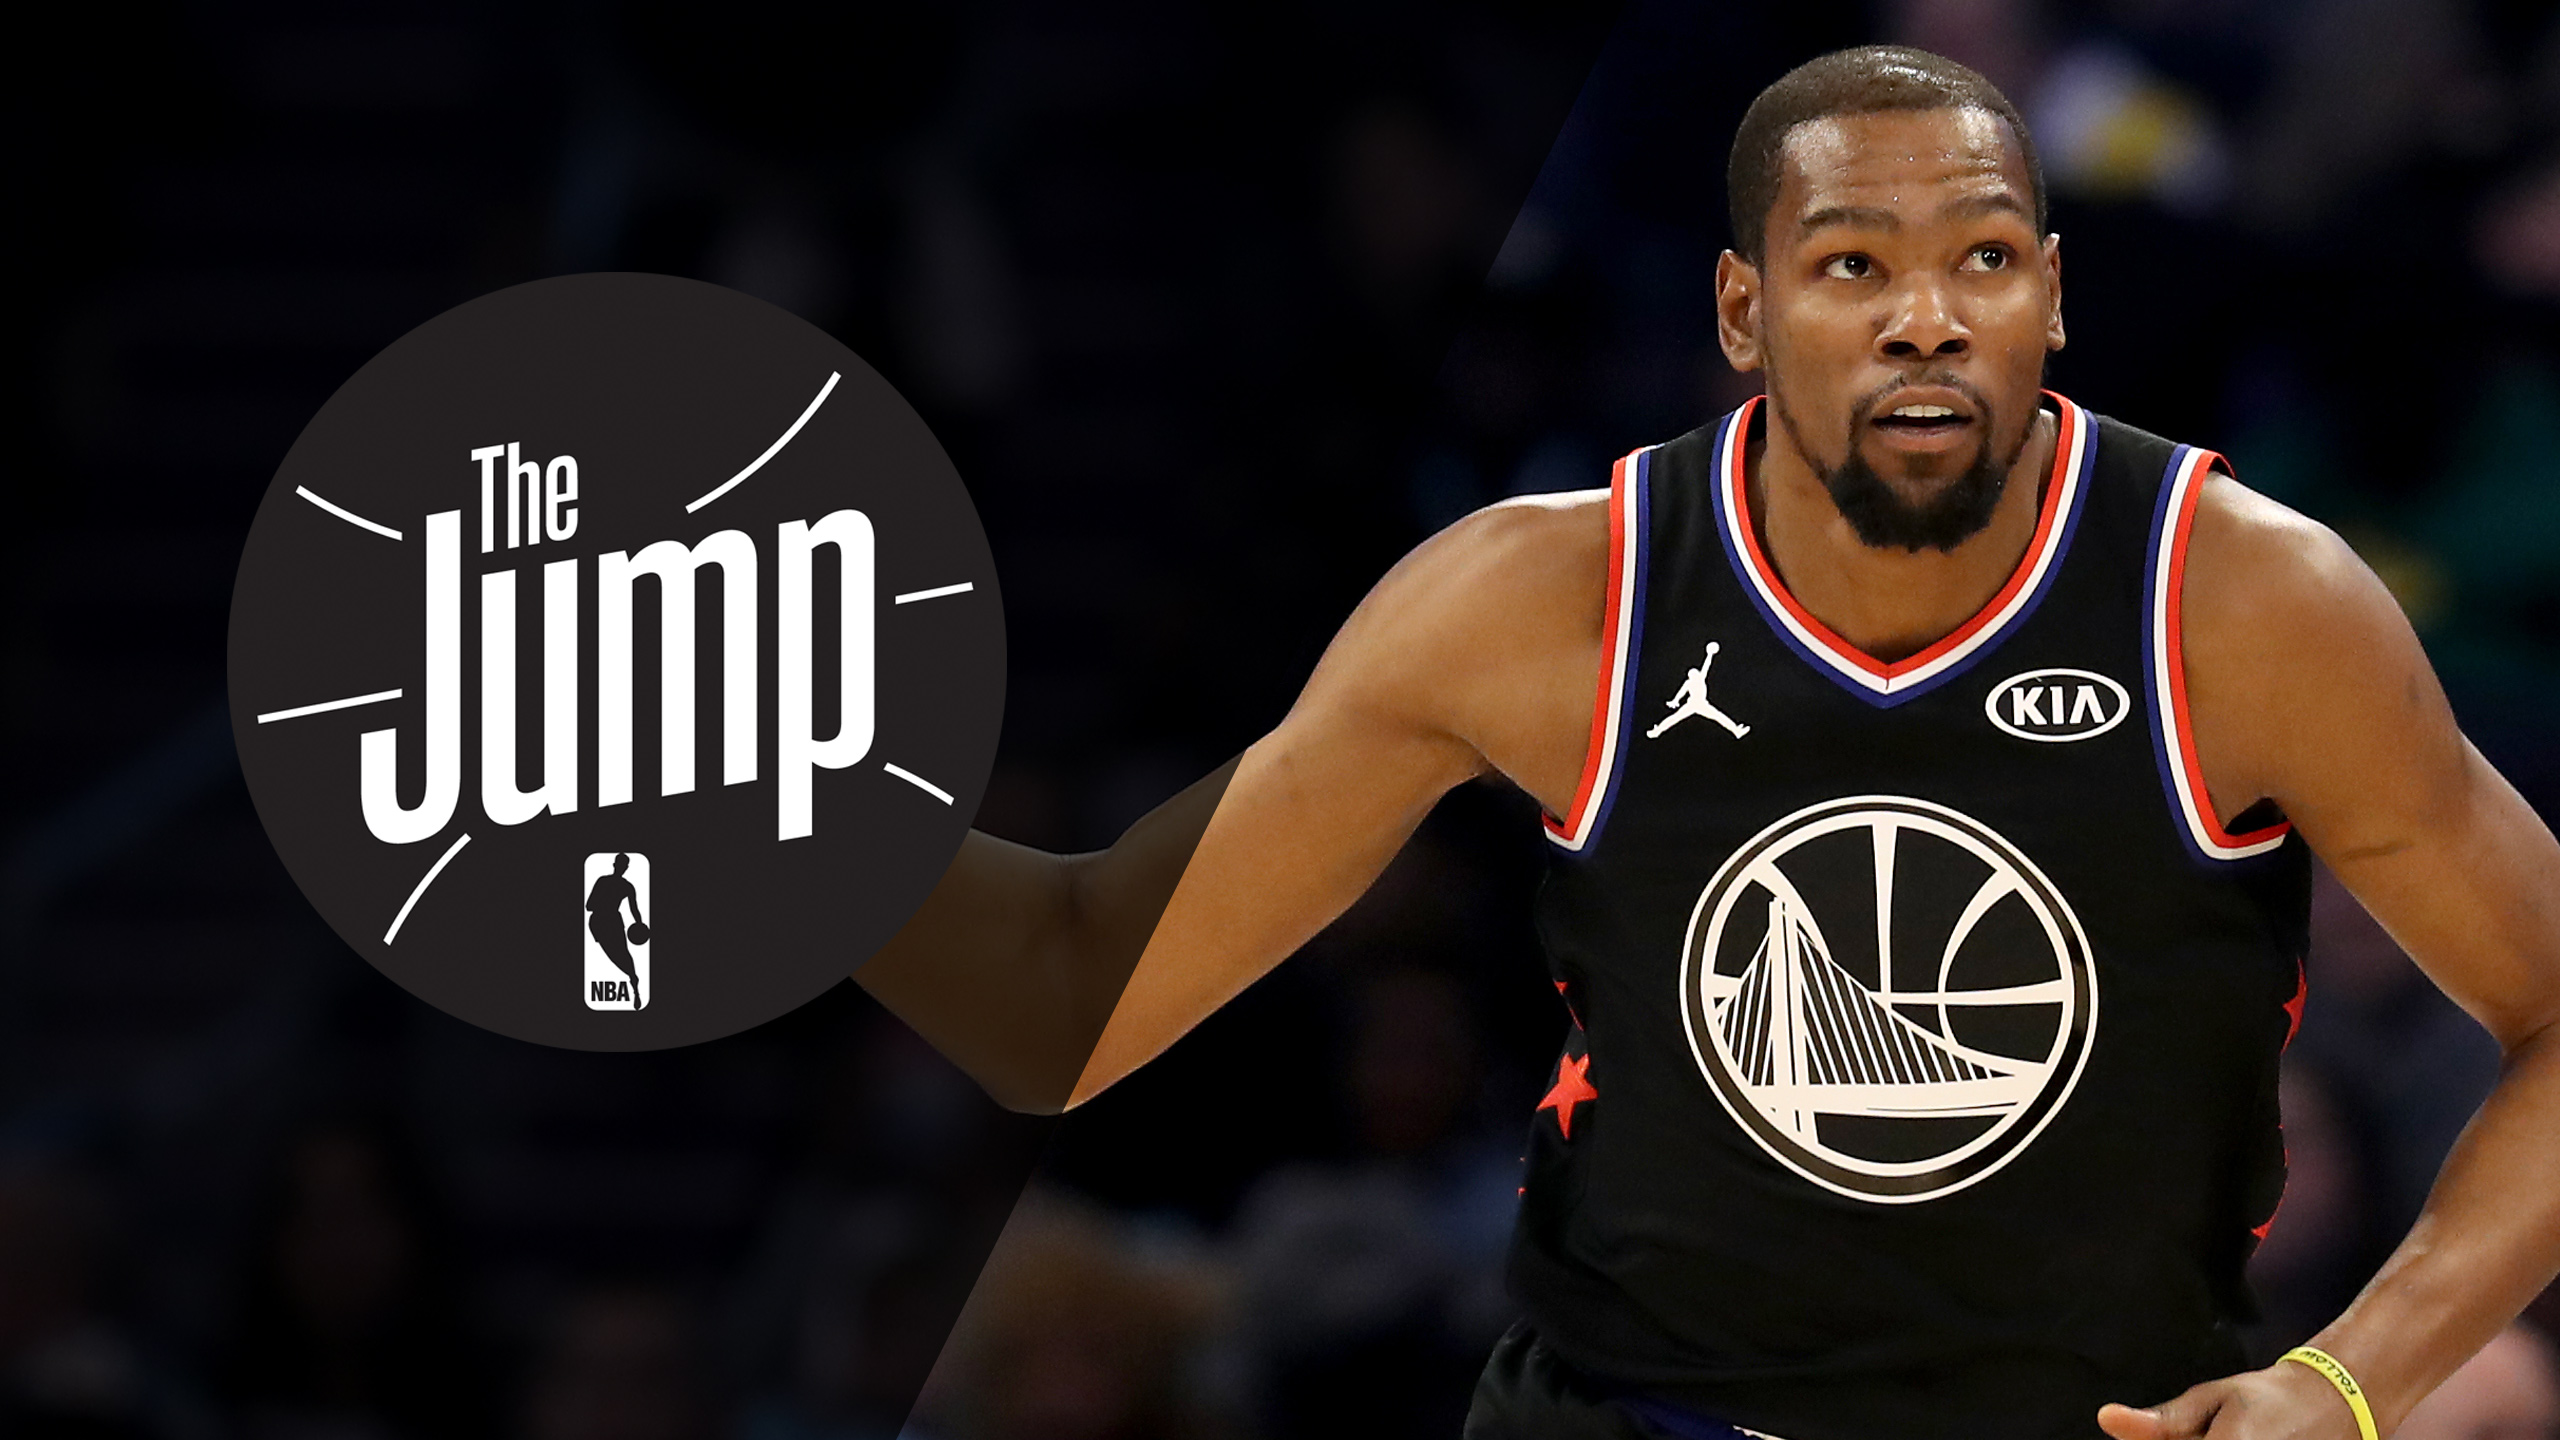 Mon, 2/18 - NBA: The Jump